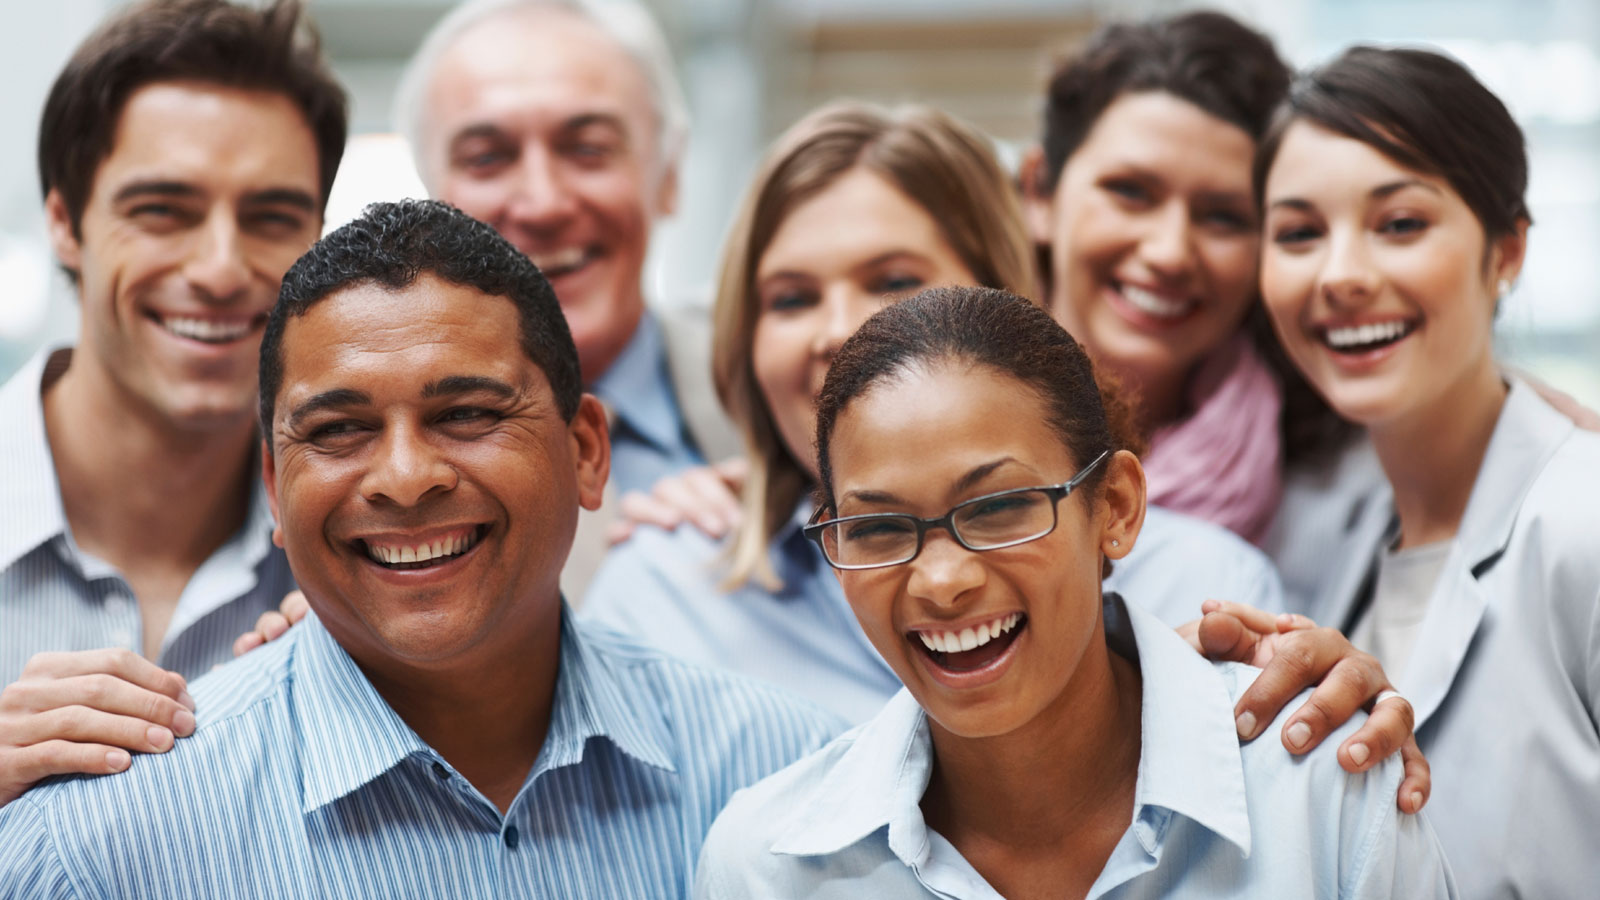 Top Employee Benefit Perks to Keep Your Employees Happy and Healthy